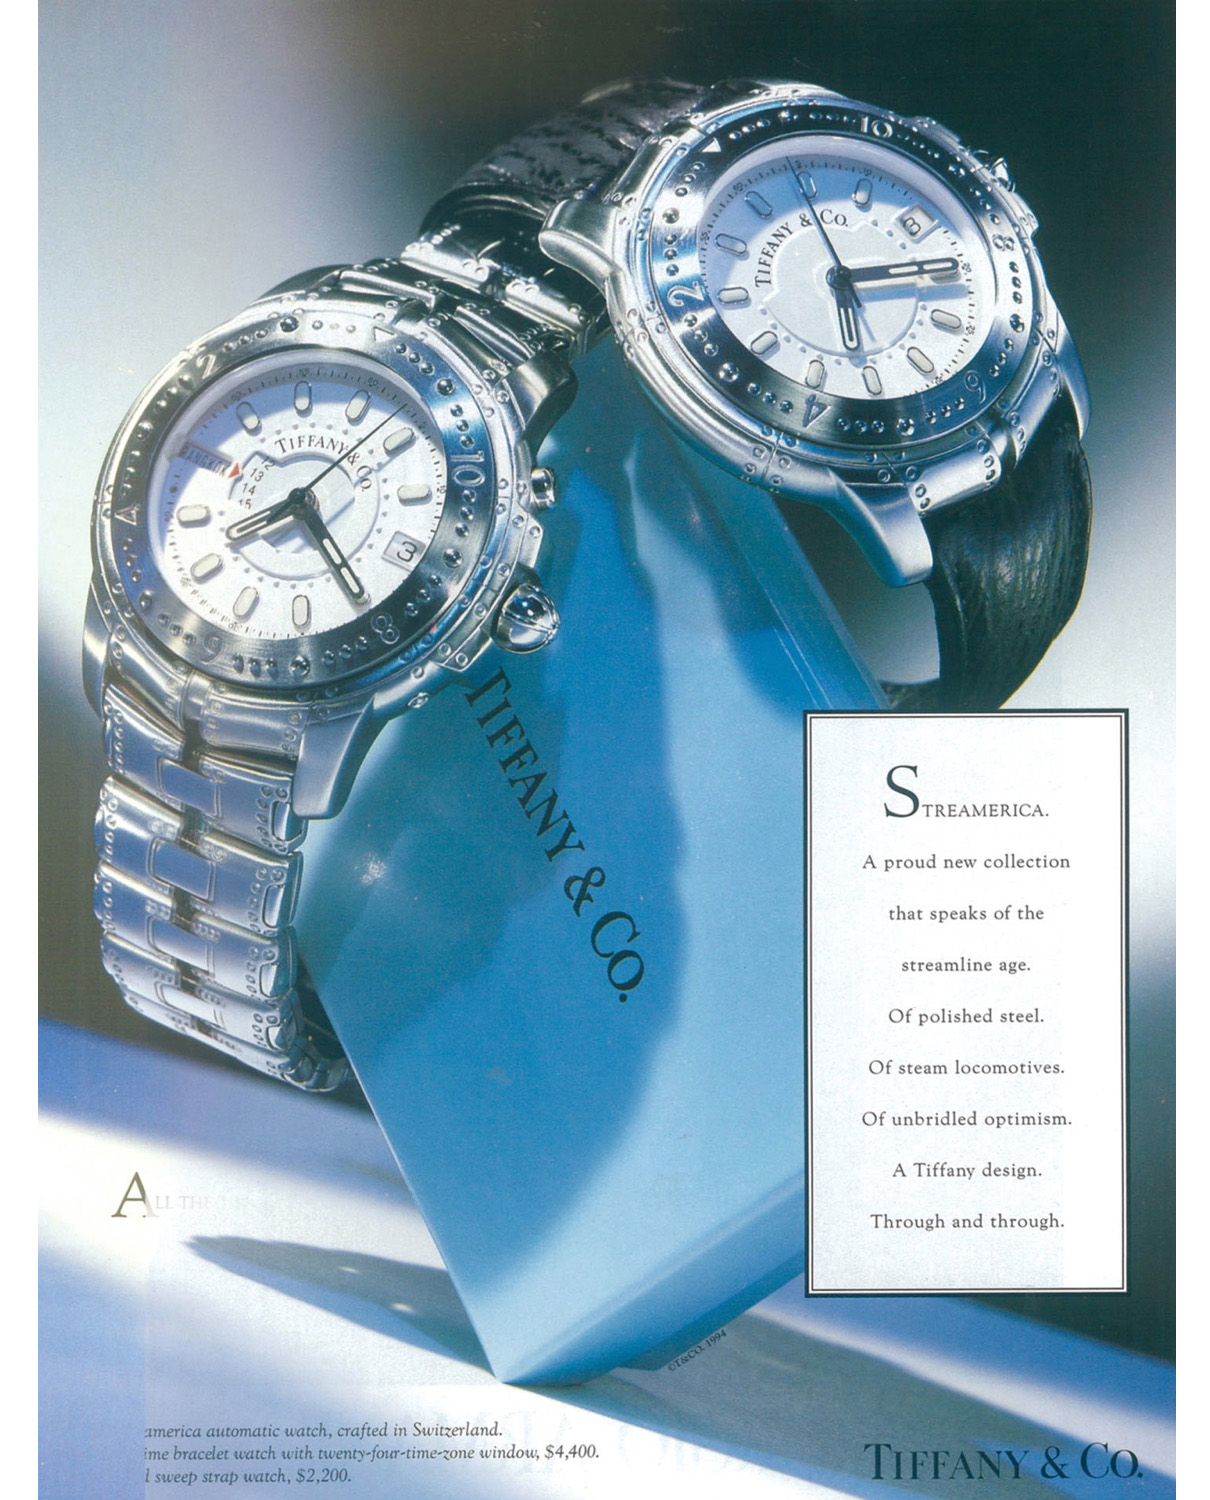 1993 advertisement from Tiffany & Co. Stainless steel World Time Automatic Watch and Automatic Chronometer with leather band.